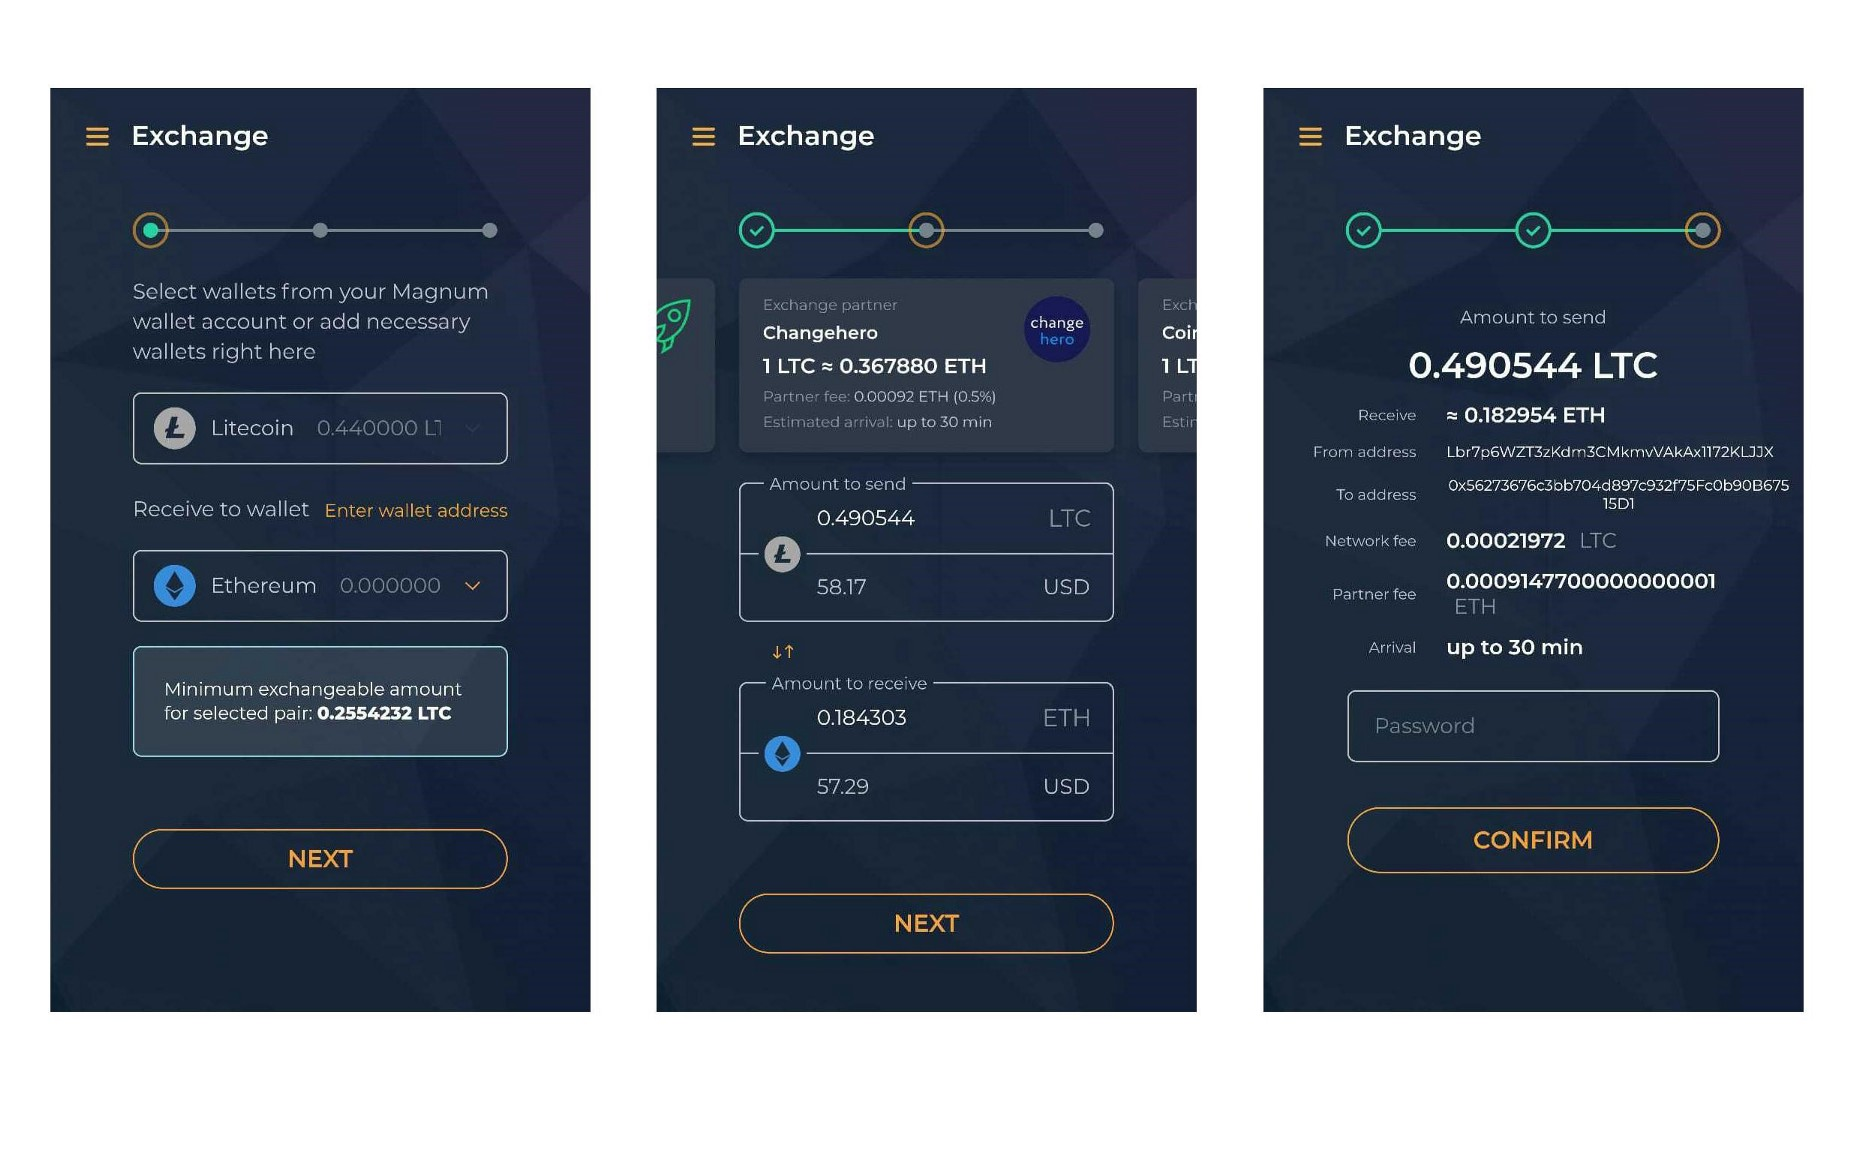 1*eEt4otlbbMUDaoTrbEvggg - Magnum Wallet and ChangeHero — How to Exchange Crypto Without Leaving the Wallet